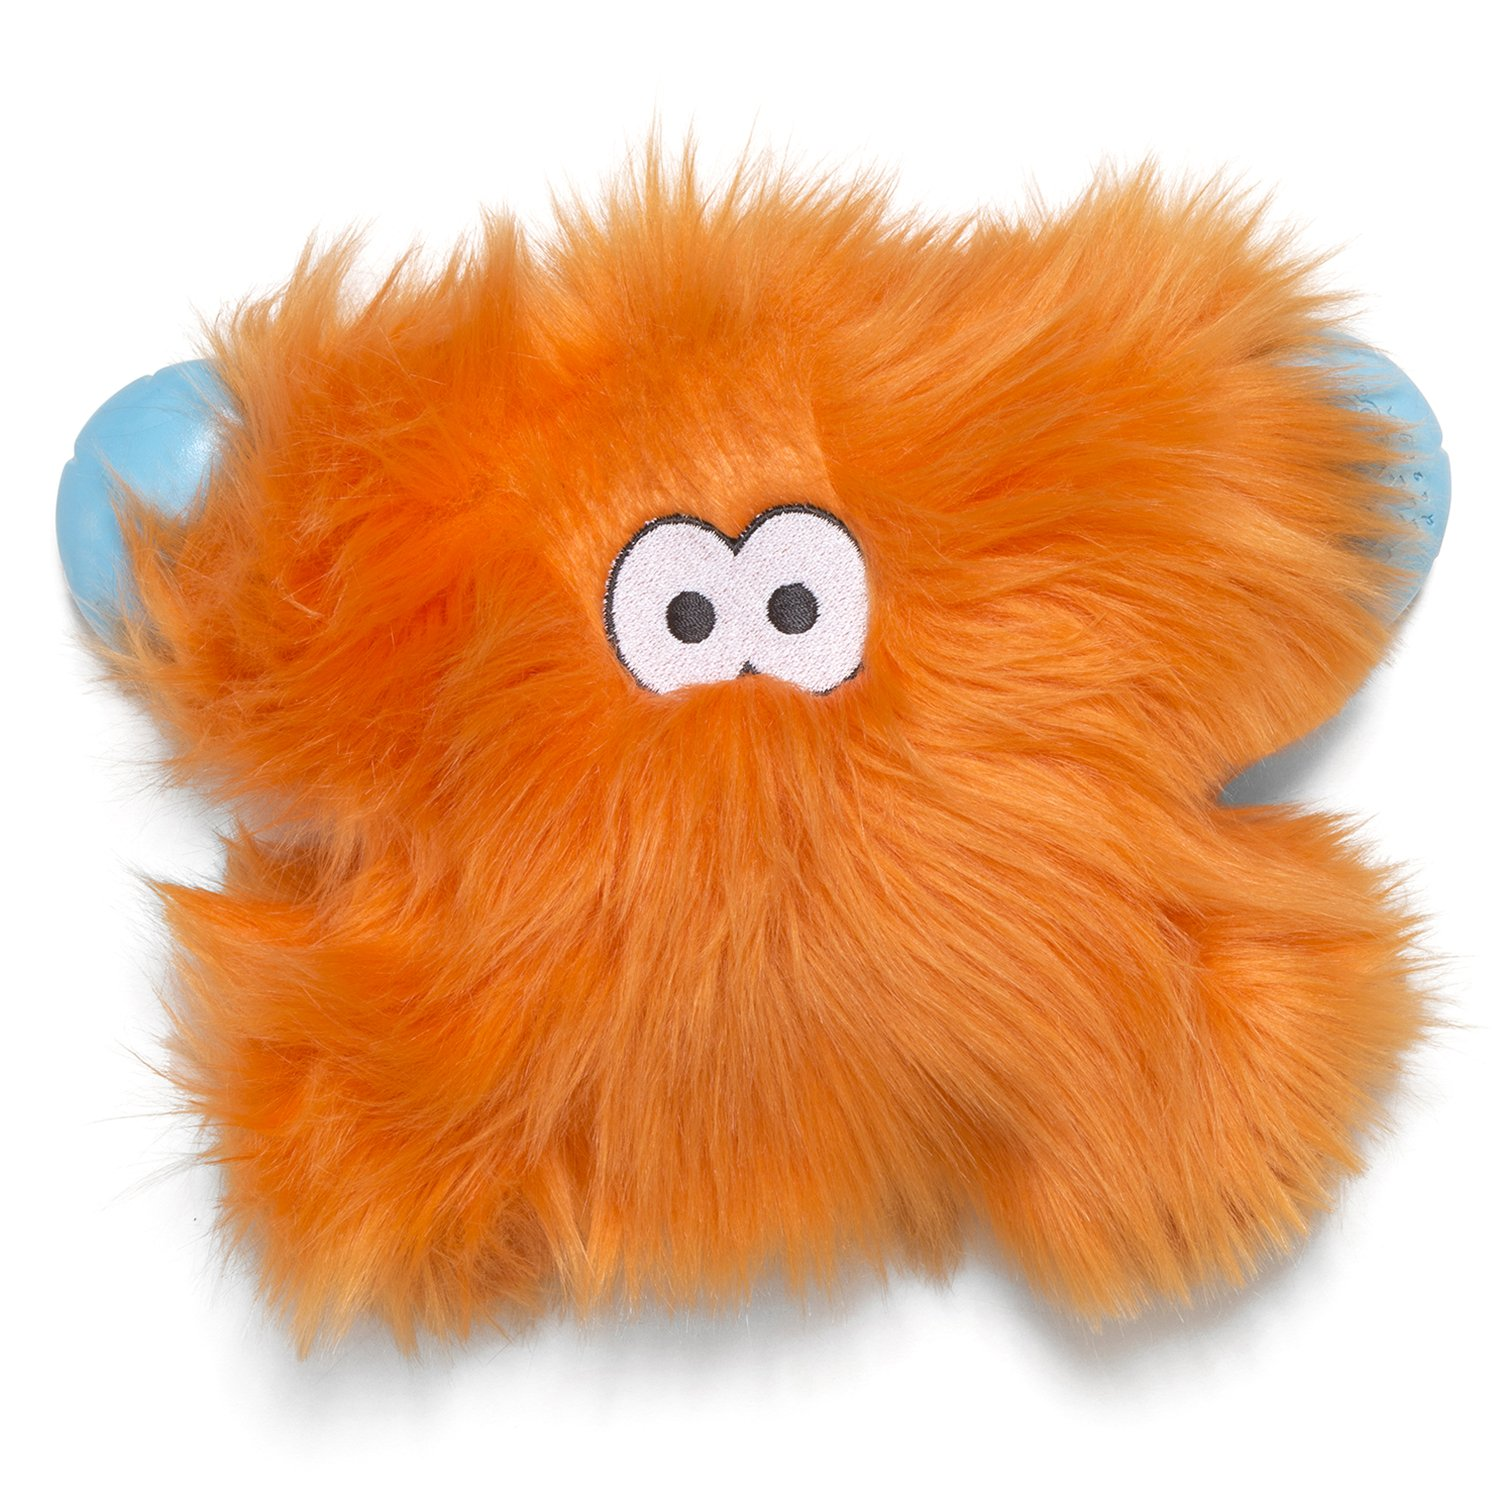 West Paw Rowdies with HardyTex and Zogoflex, Durable Plush Dog Toy for Small Dogs, Fergus, Orange Fur by West Paw Design